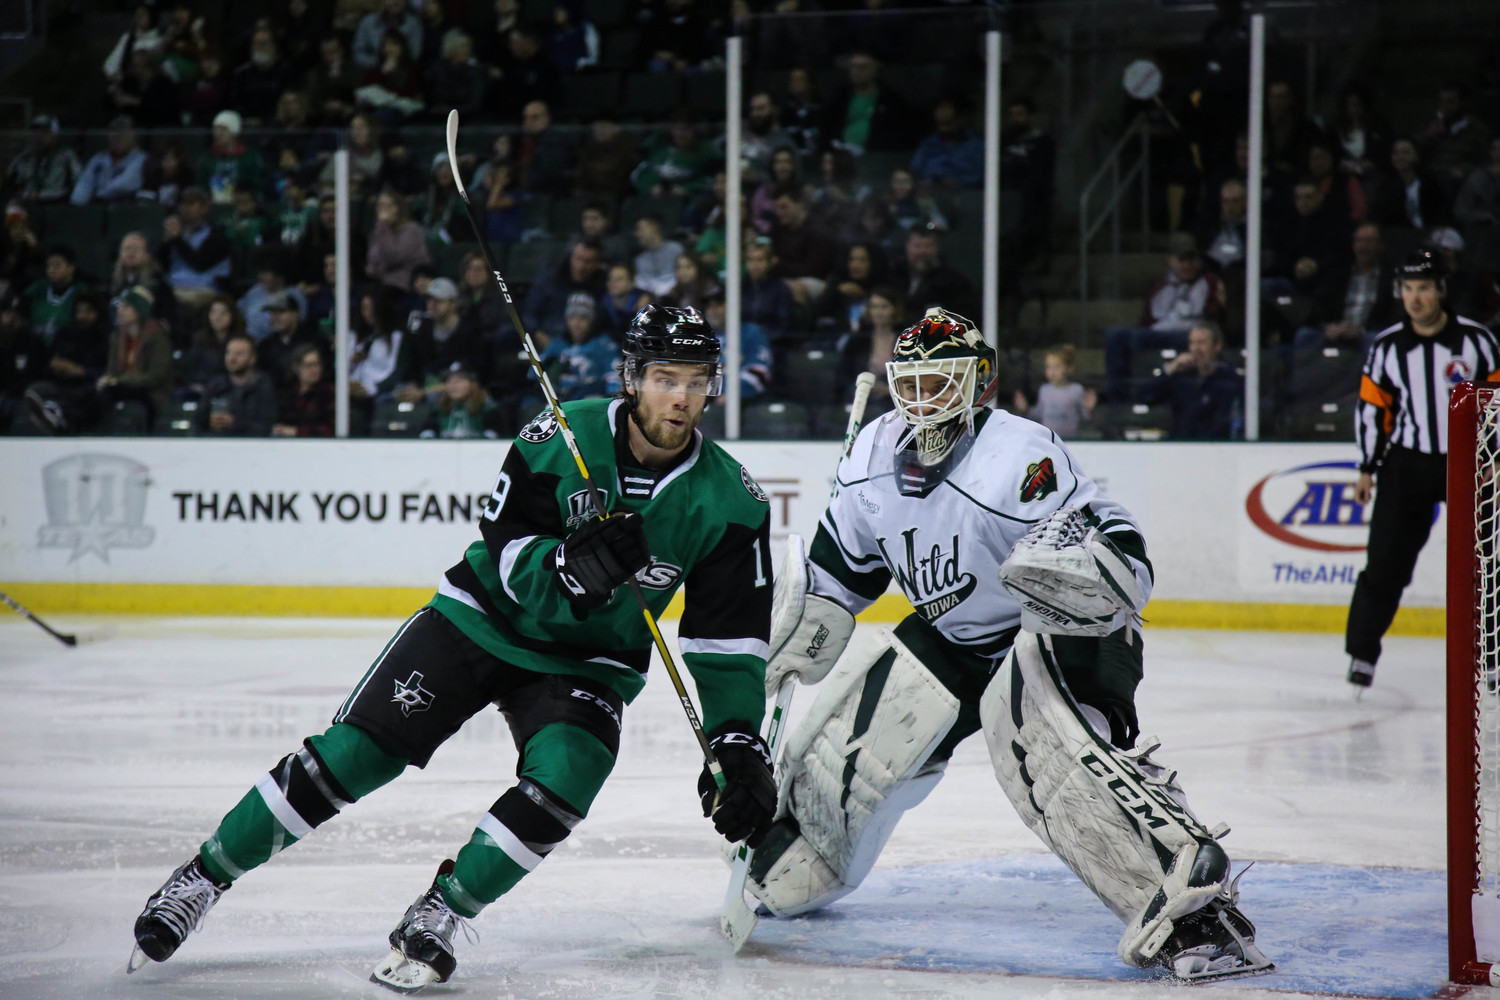 Brad McClure and the Texas Stars beat the Iowa Wild 4-3 at home on Saturday night